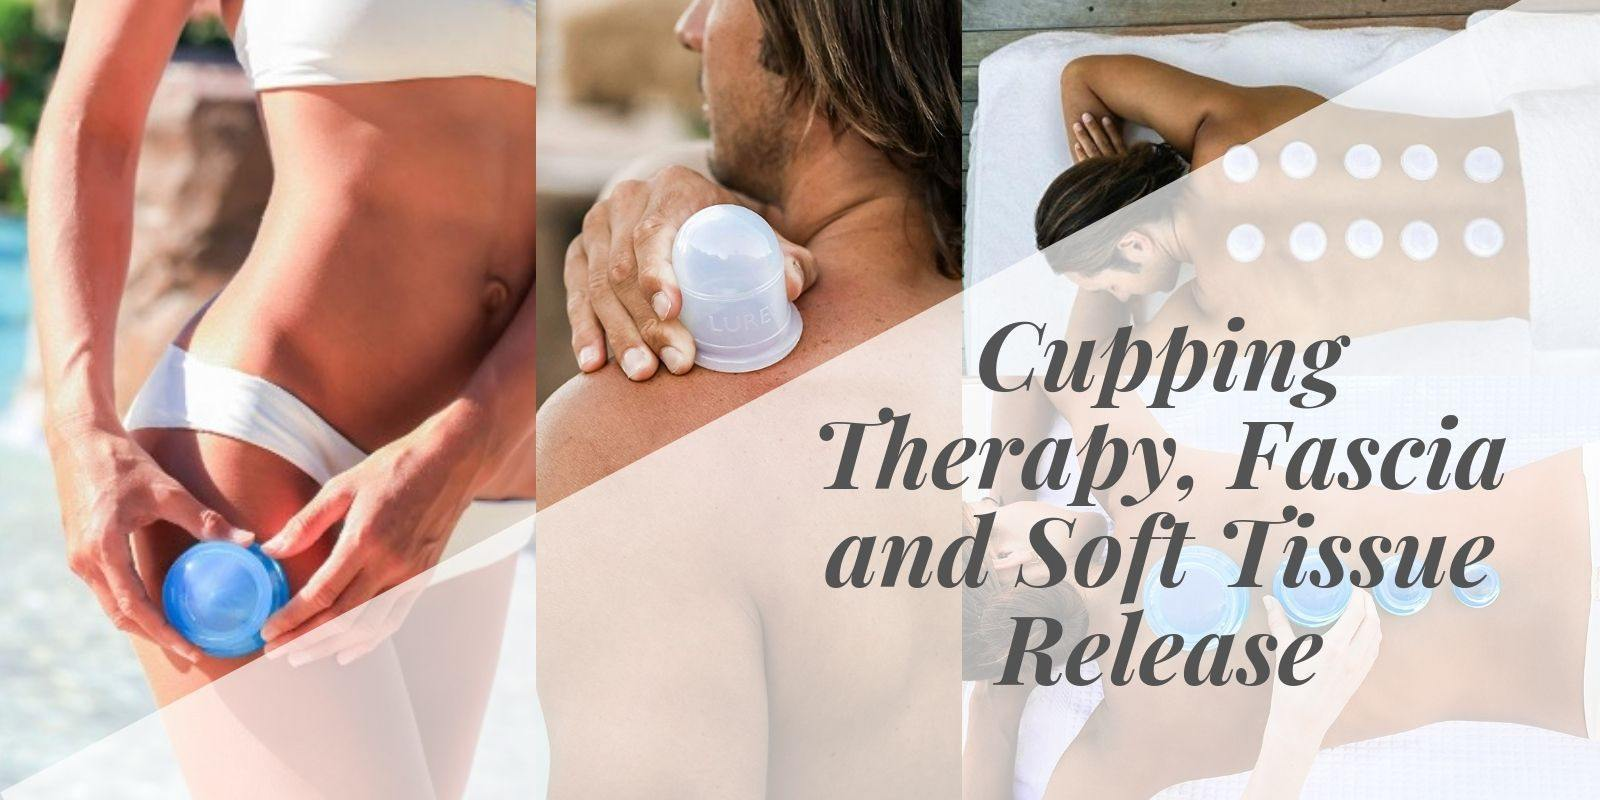 Cupping Therapy, Fascia and Soft Tissue Release - Lure Essentials